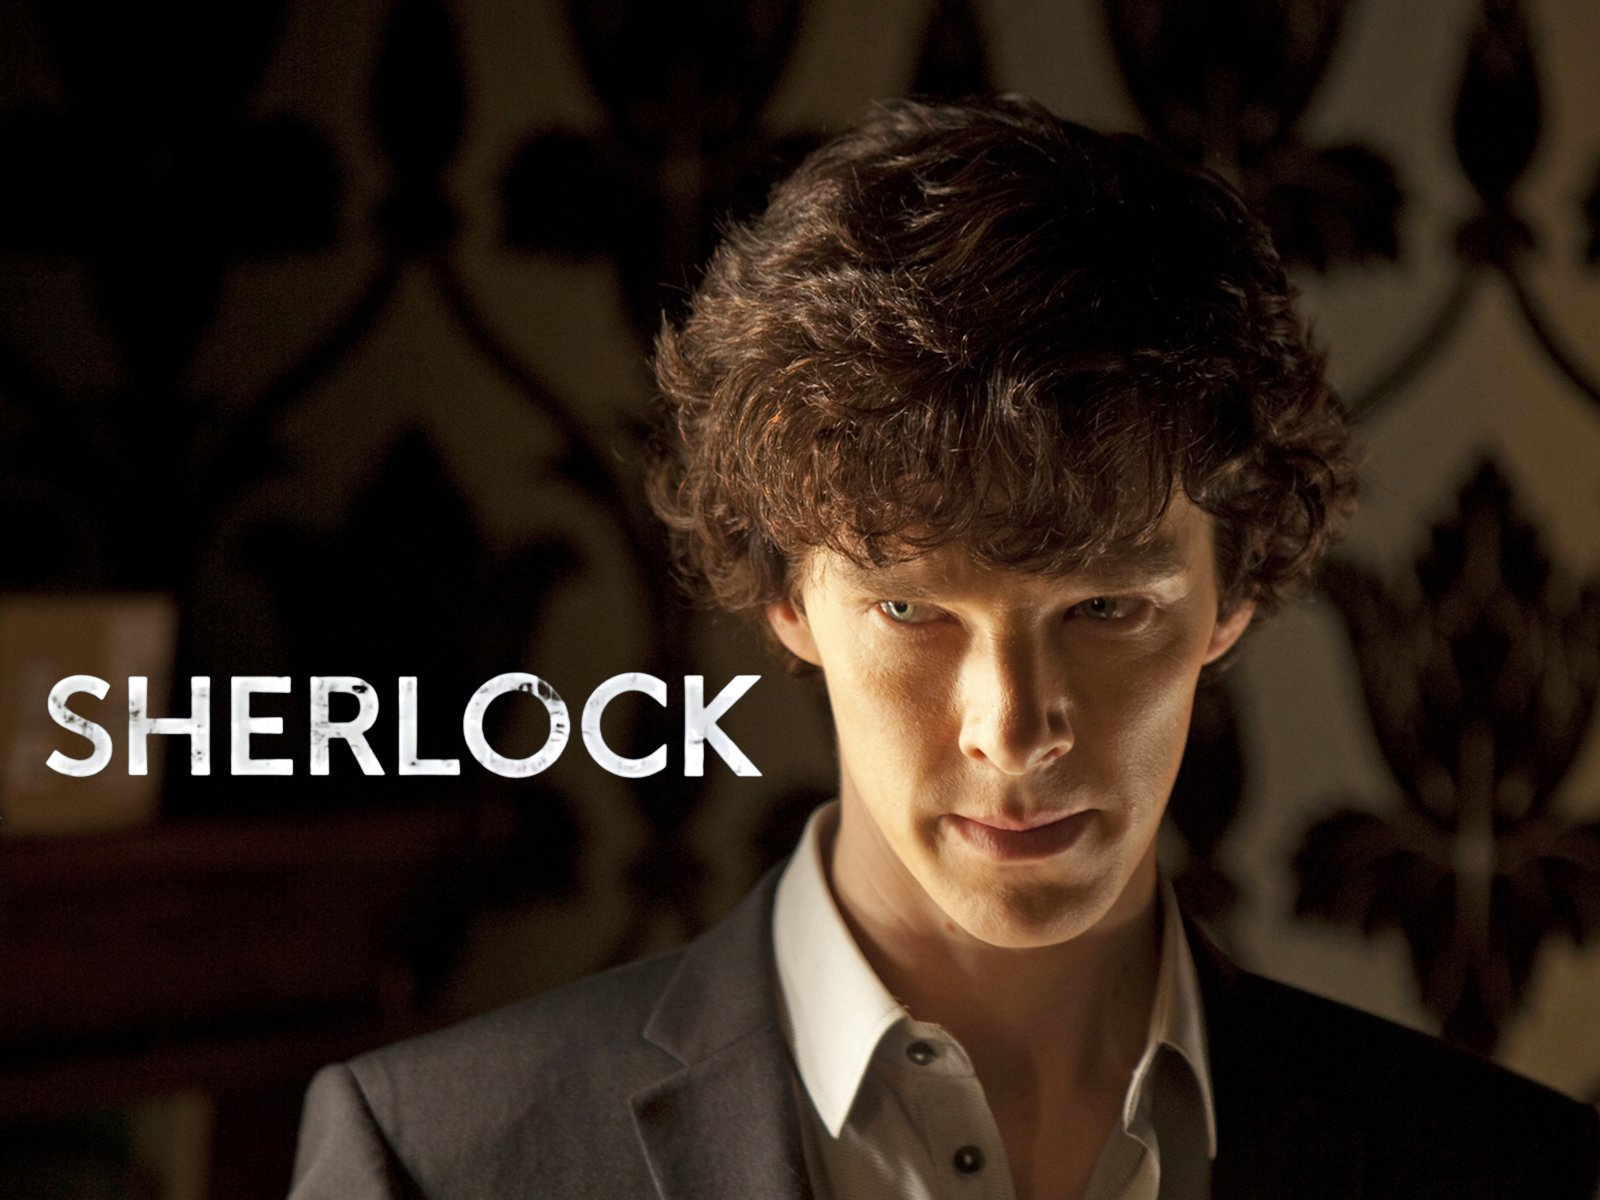 Benedict Cumberbatch Wallpaper Hd: Sherlock Wallpaper And Background Image